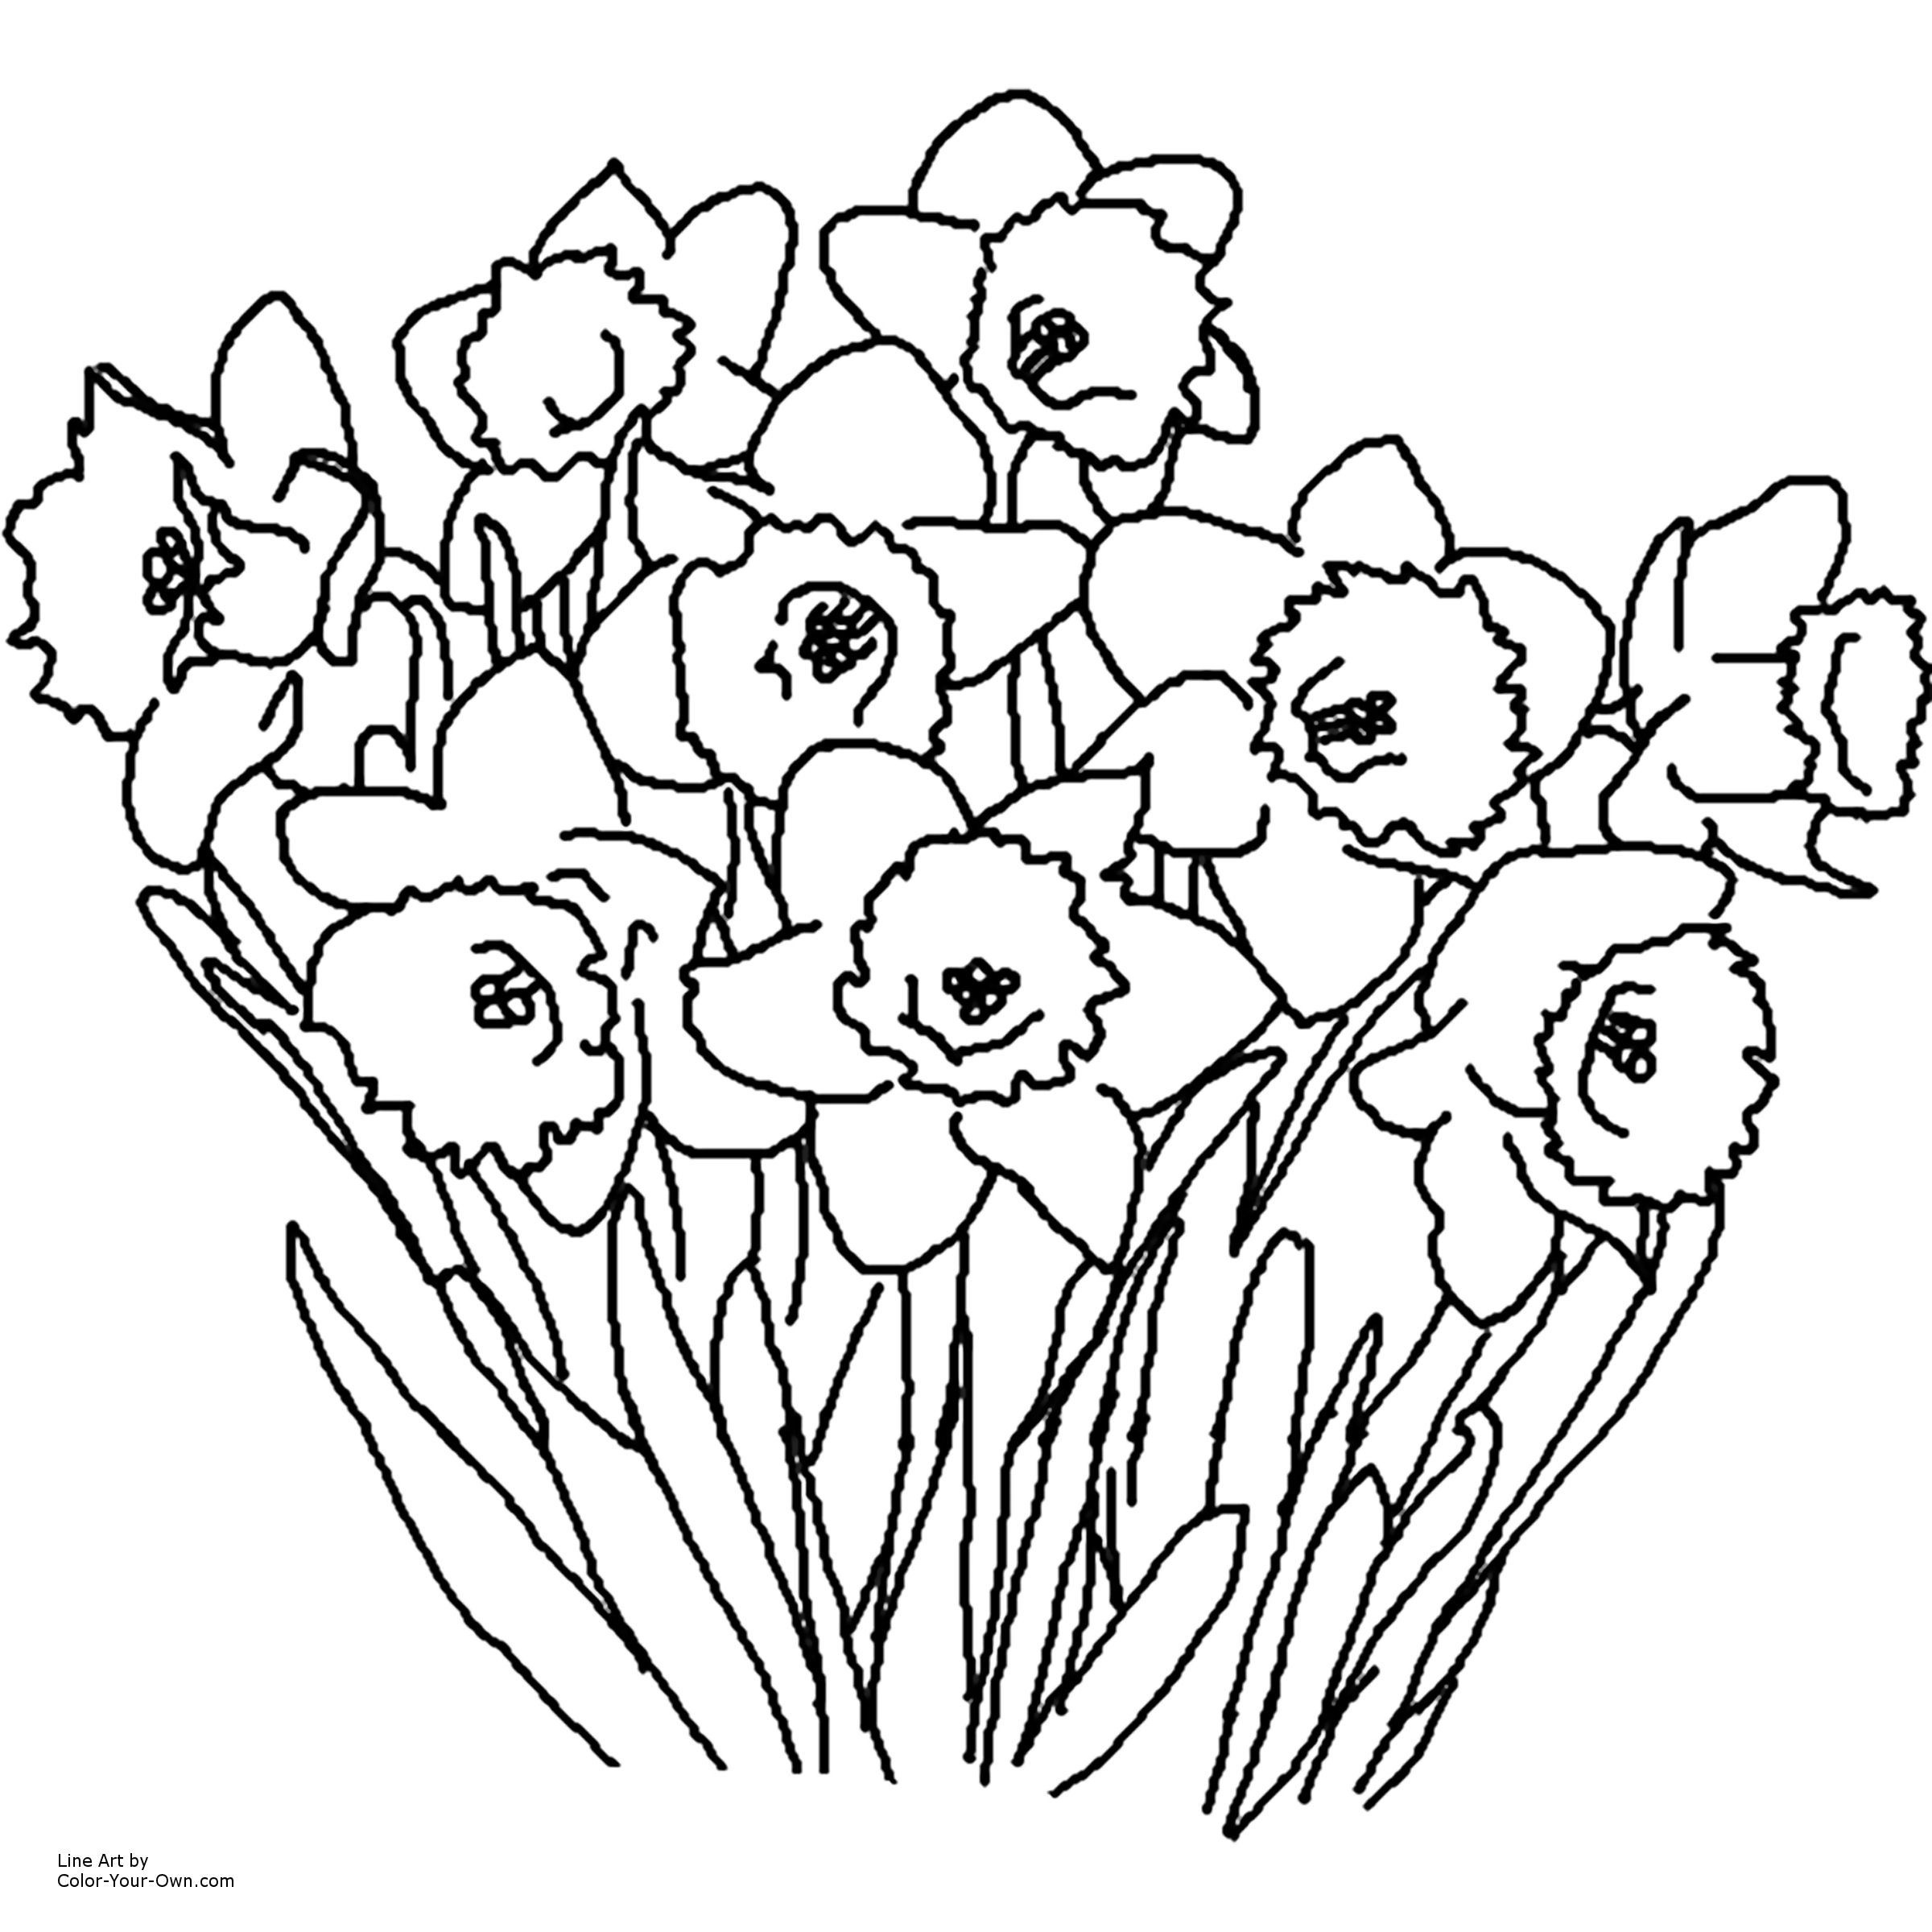 Daffodil Coloring Page. How To Draw A Tiger Lily Stepstep - Free Printable Pictures Of Daffodils